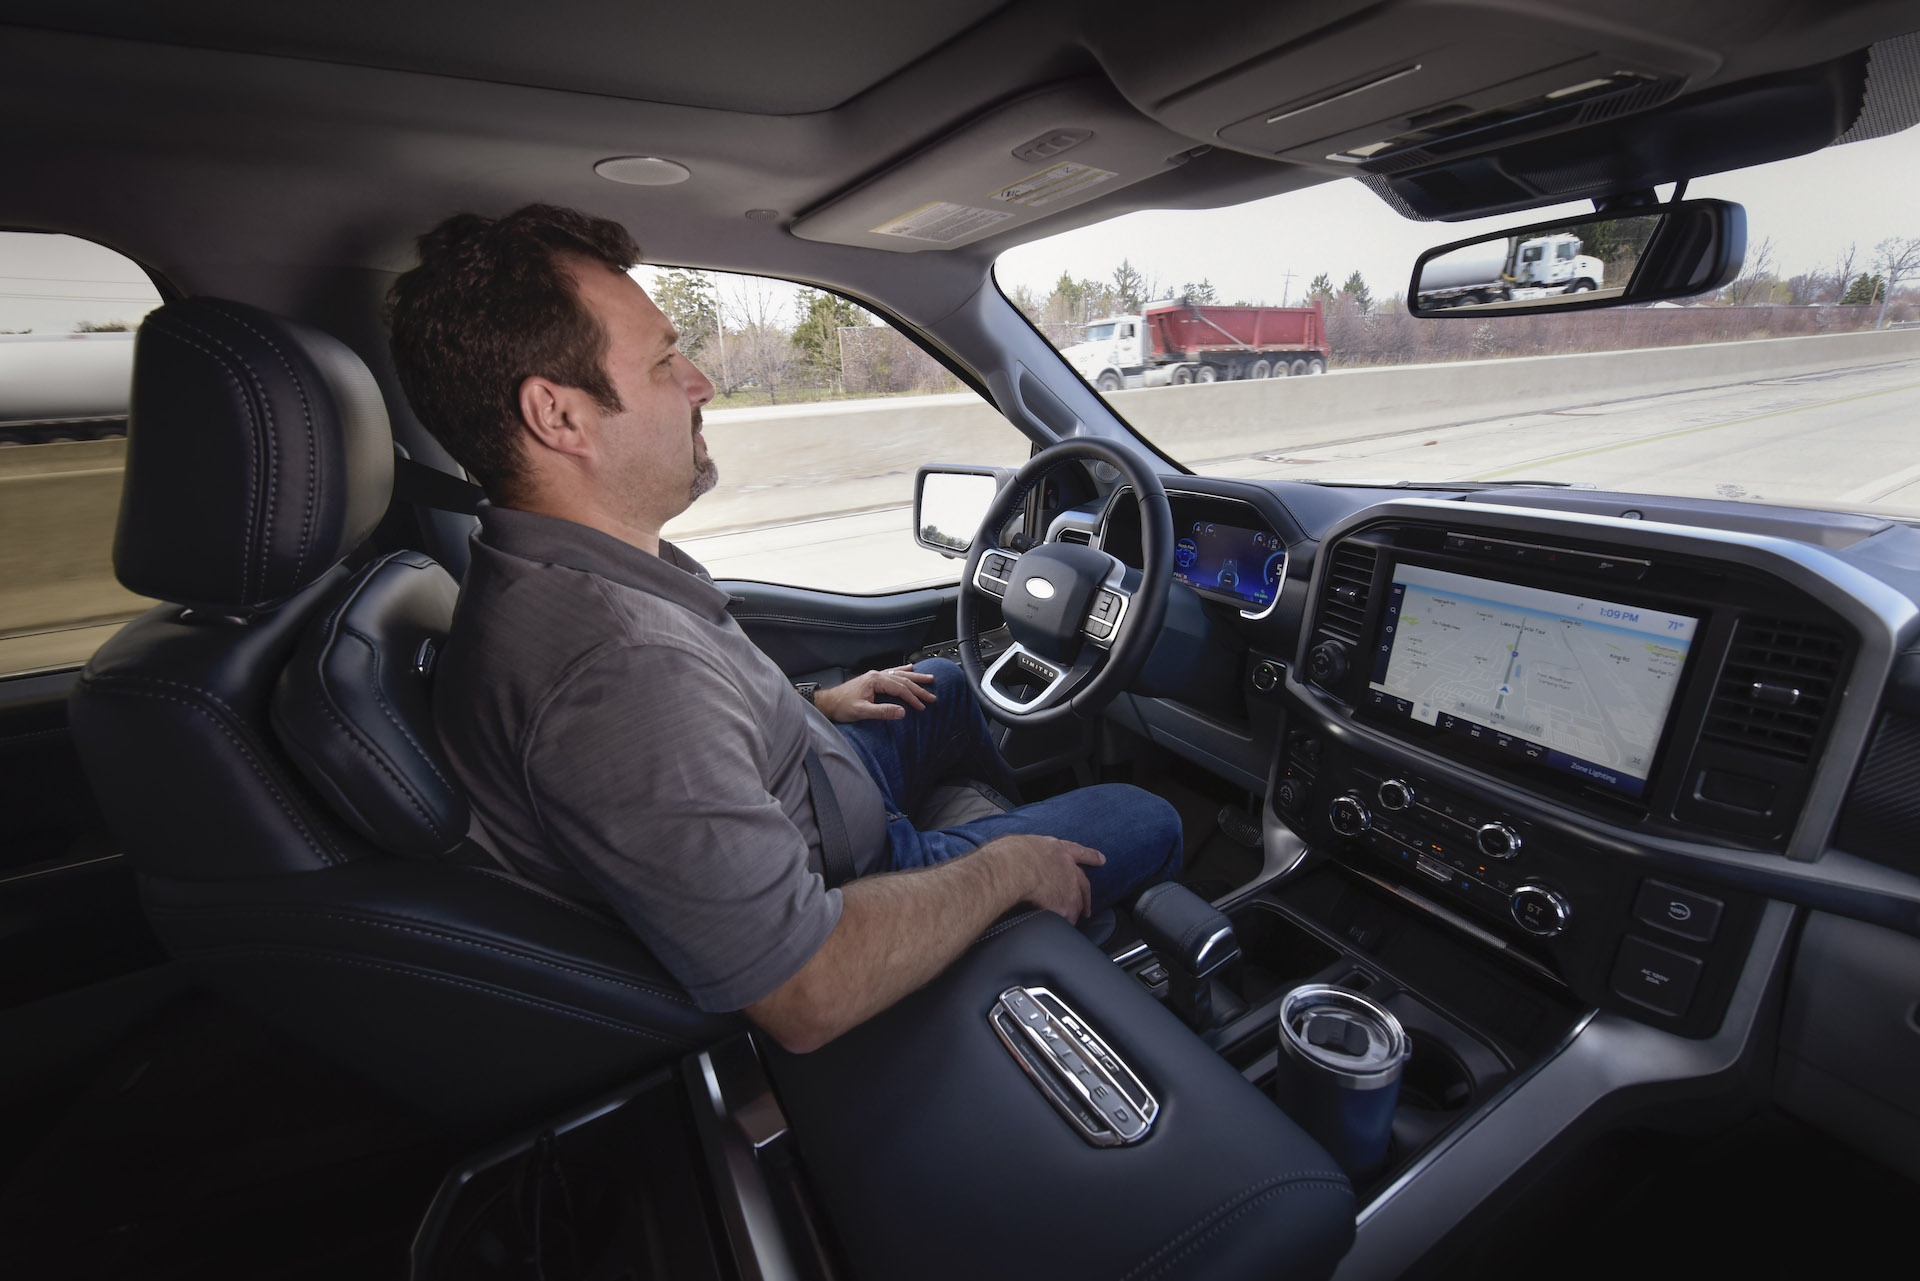 Ford to release BlueCruise hands-free driving technology later this year